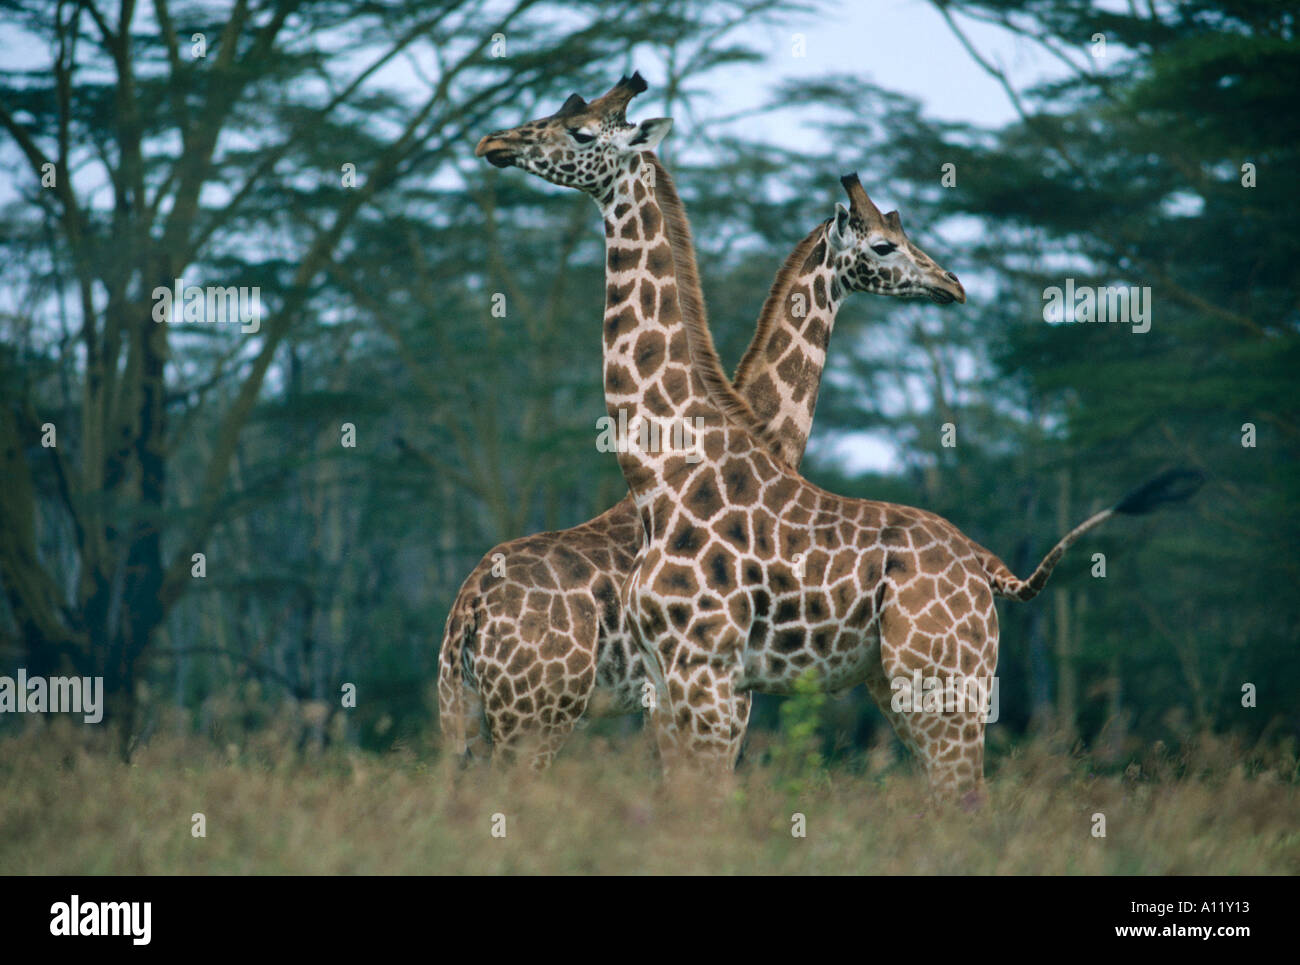 A pair of stiffly posing Rothschild giraffe in the profile stance that often precedes necking behaviour - Stock Image